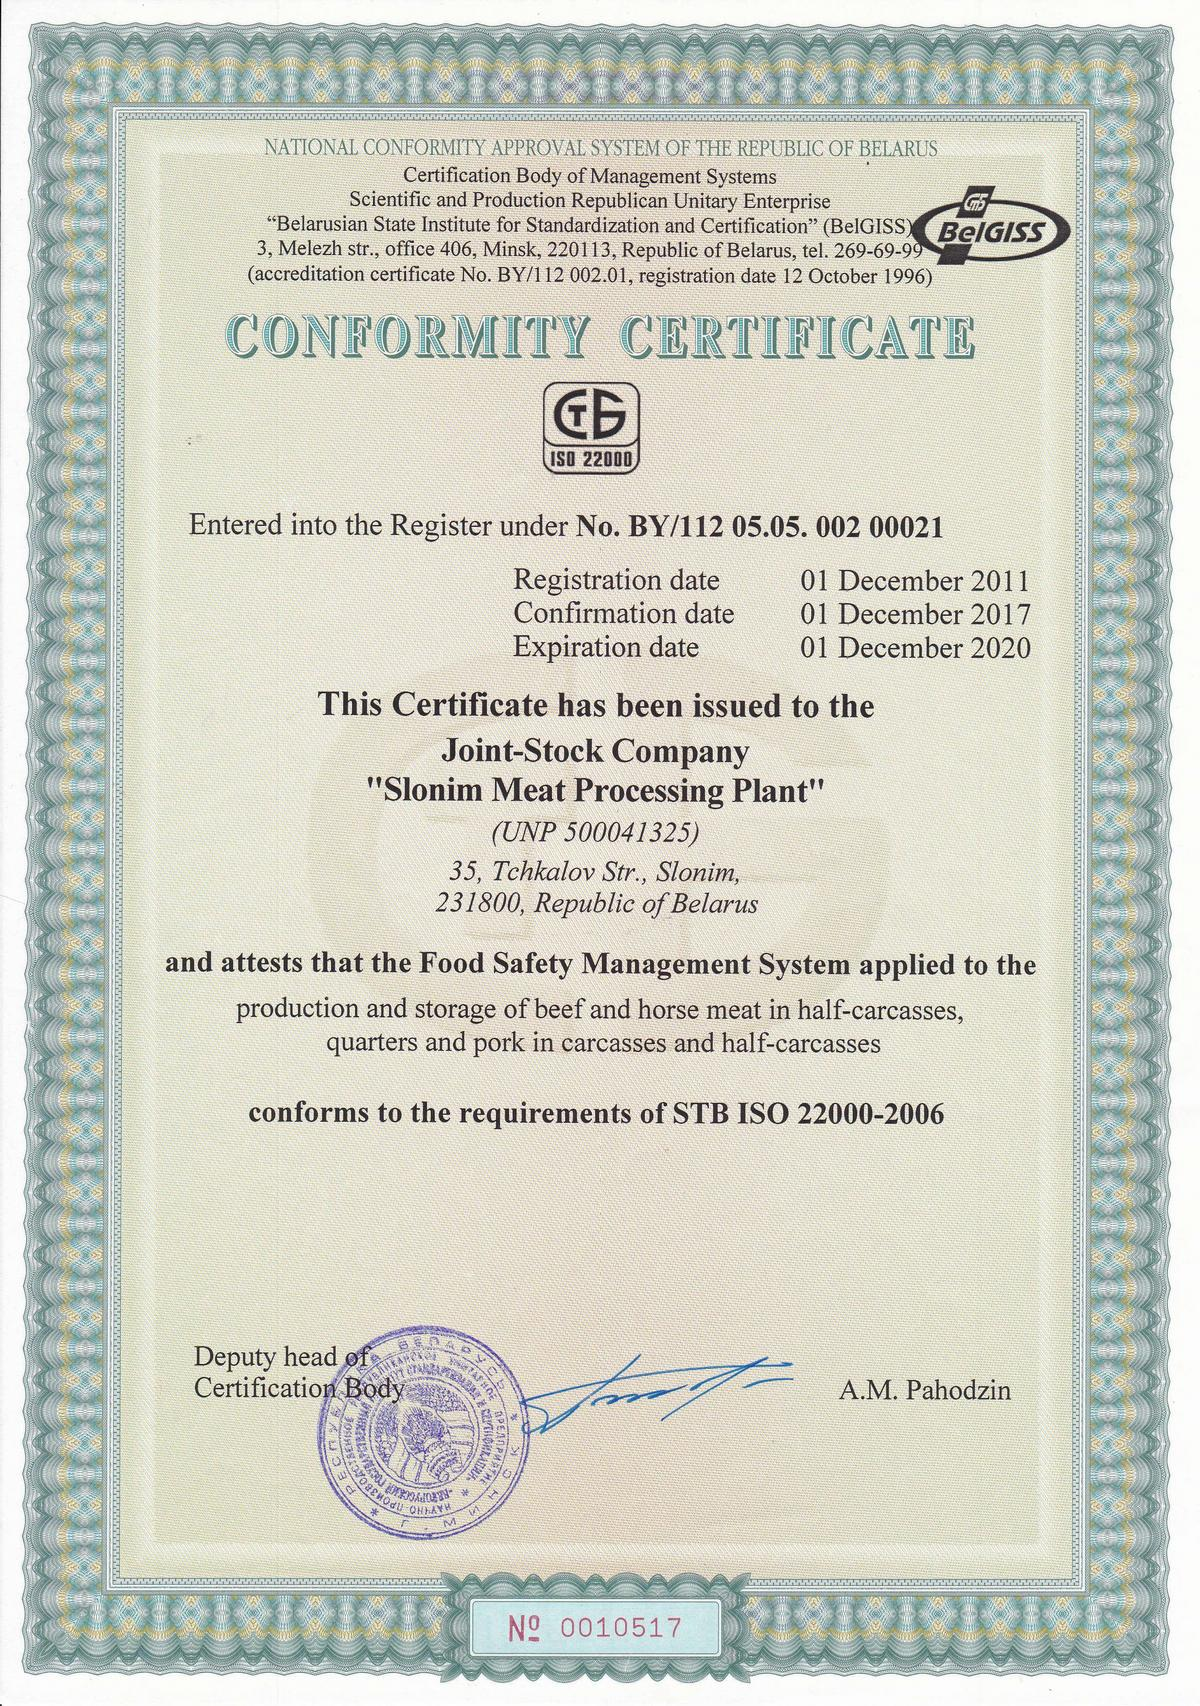 Conformity Certificate to the requirements of STB ISO 22000-2006